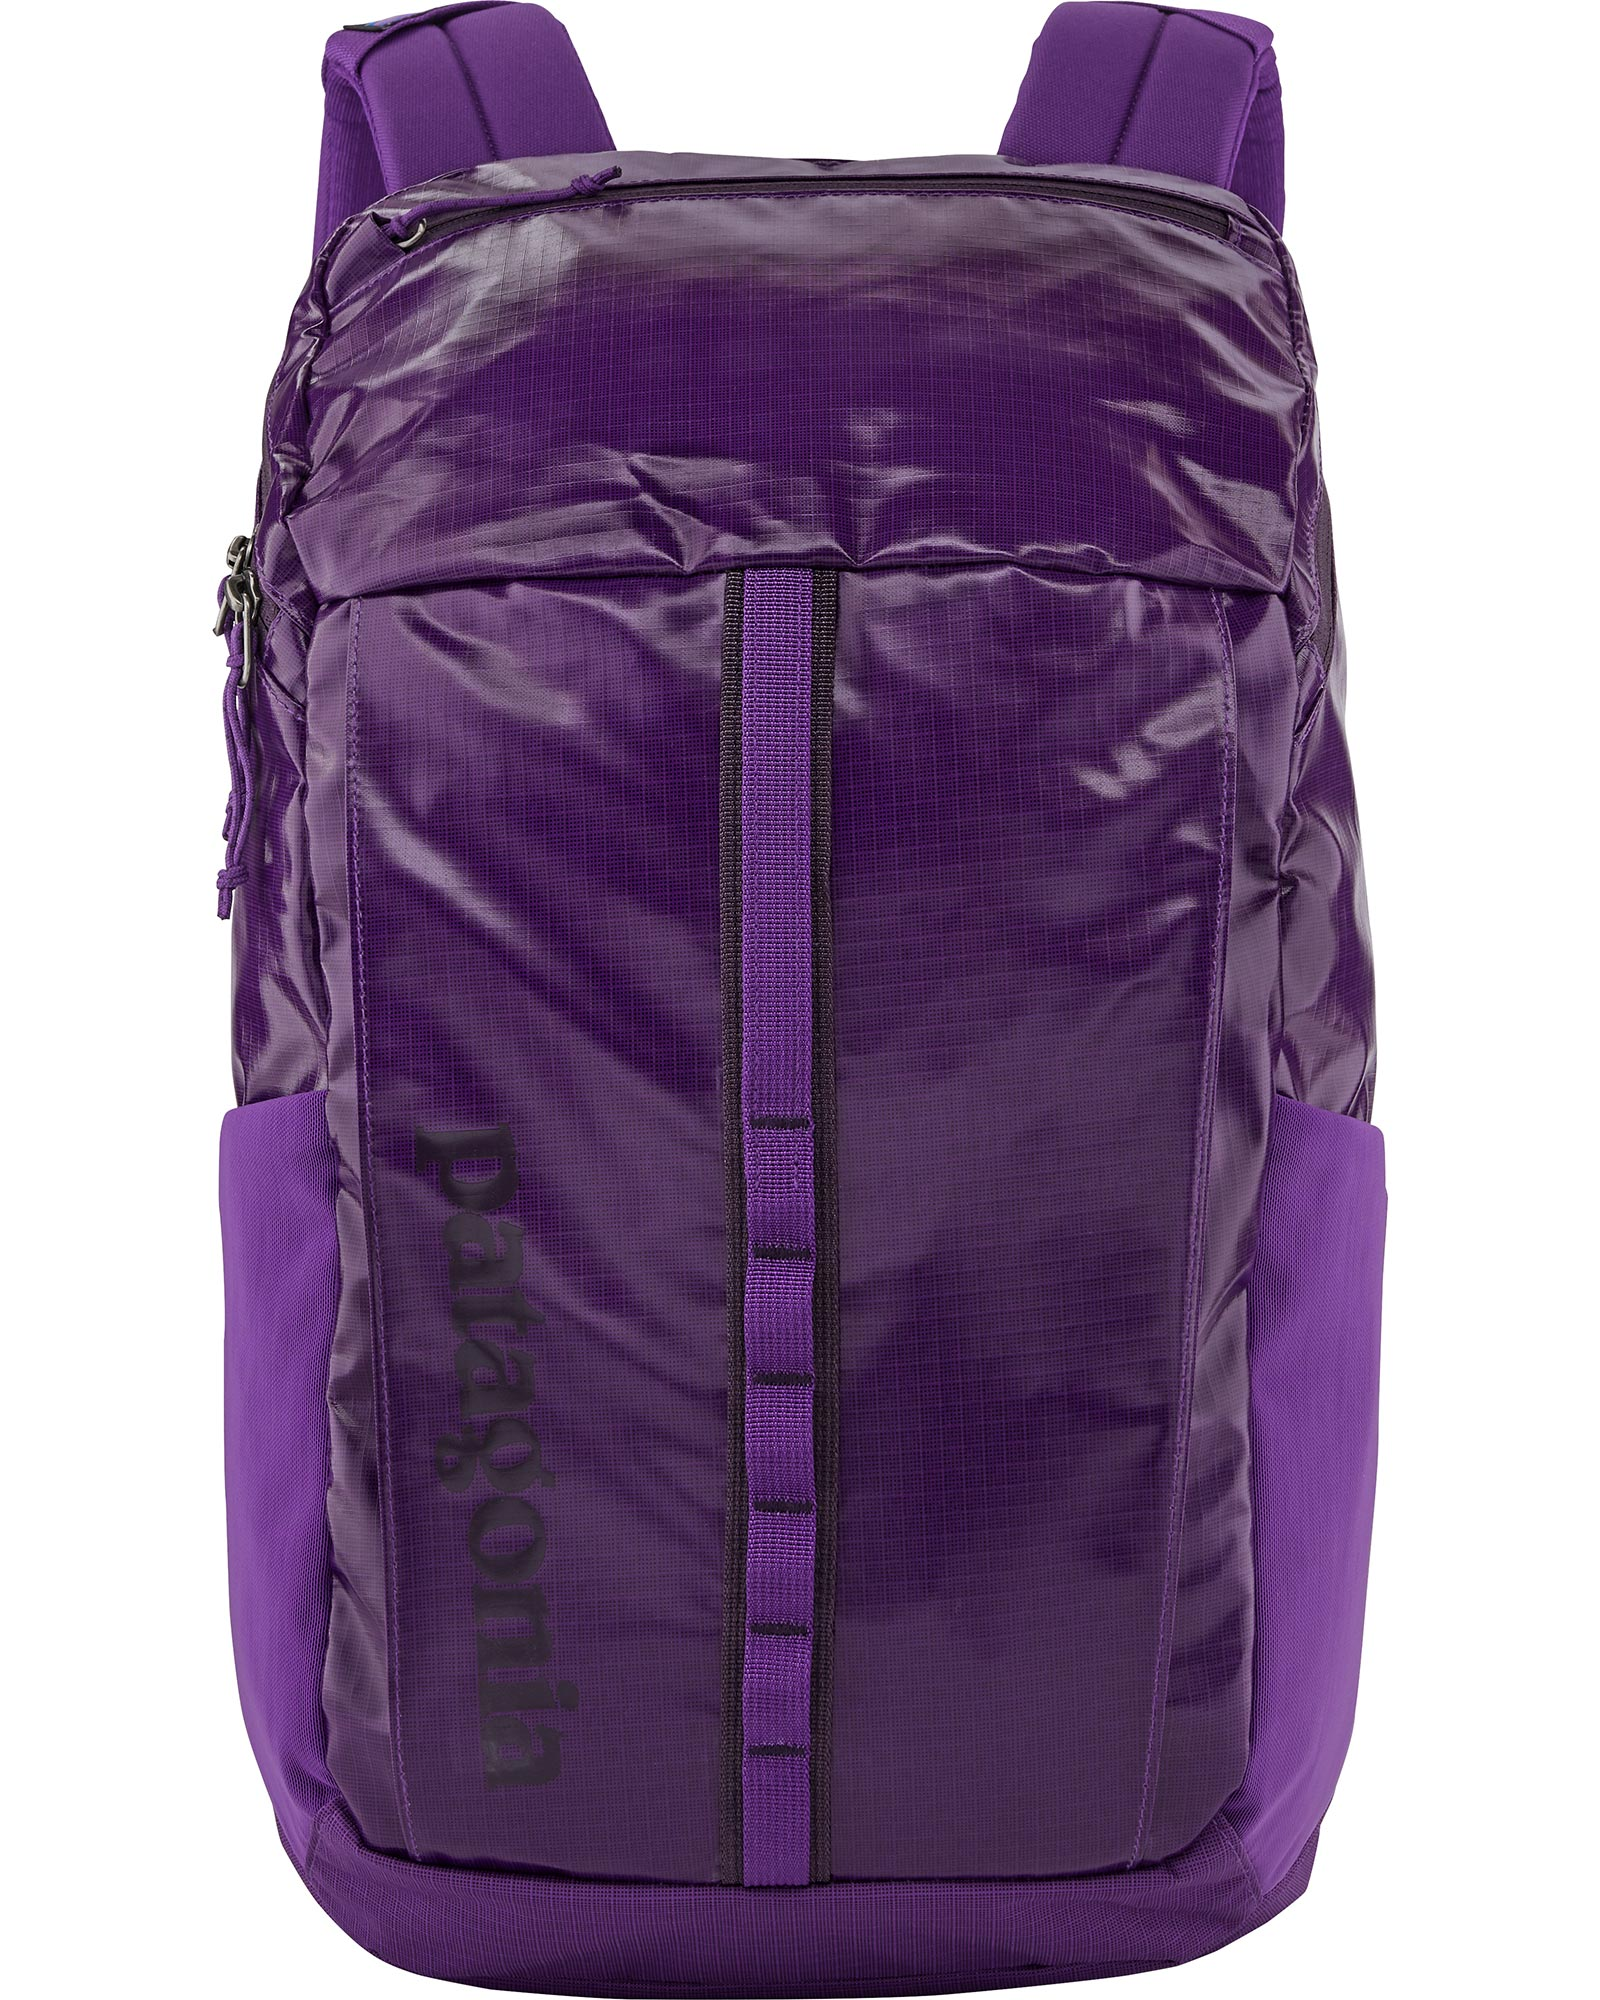 Patagonia Women's Black Hole Pack 23L Backpack 0